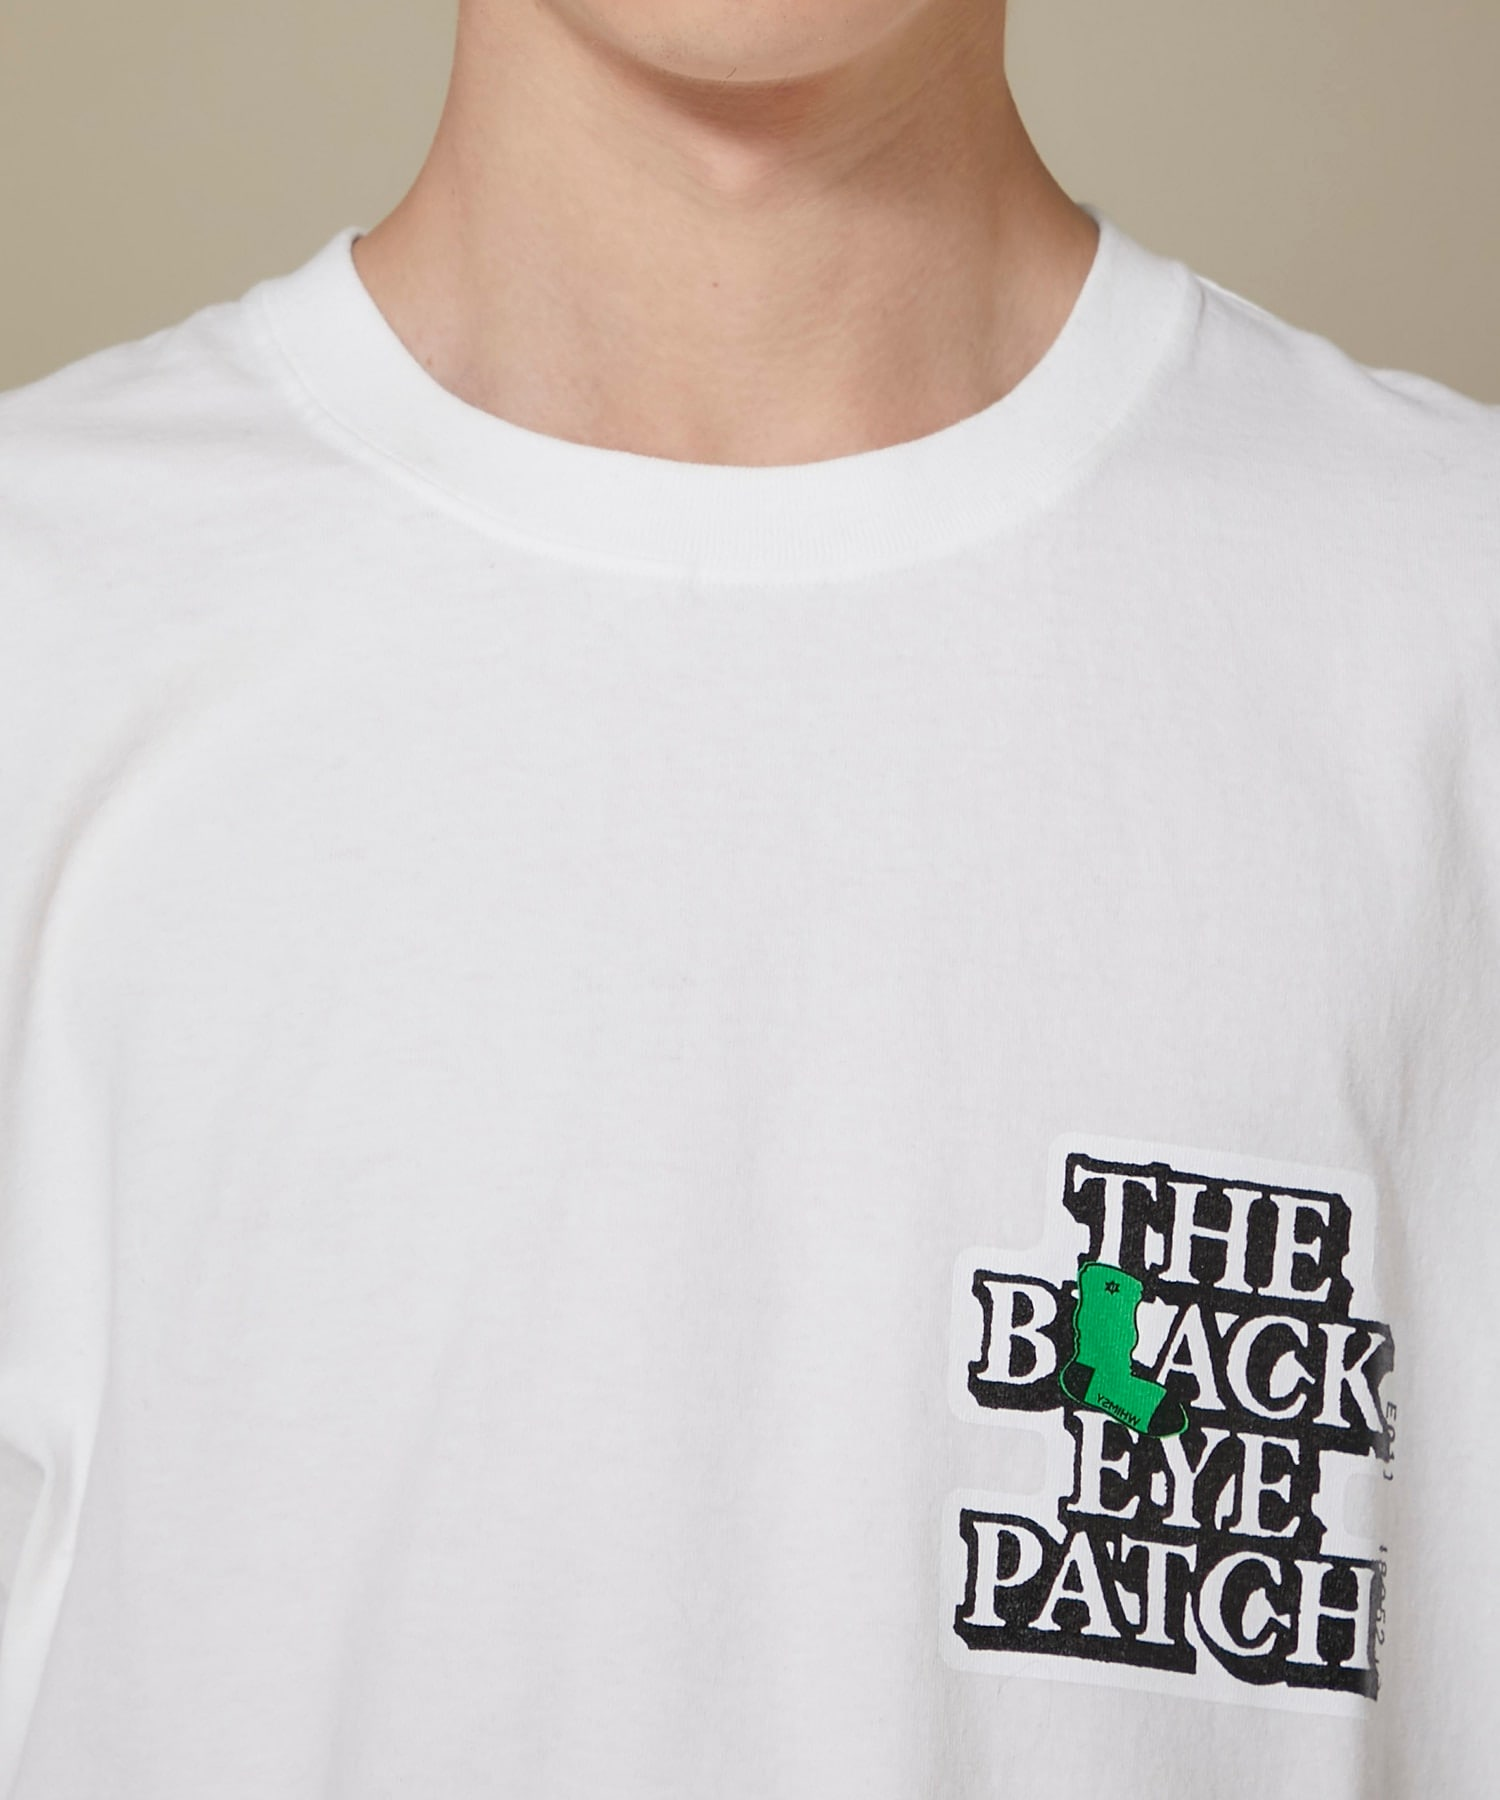 PAINT TRADERS TEE BlackEyePatch